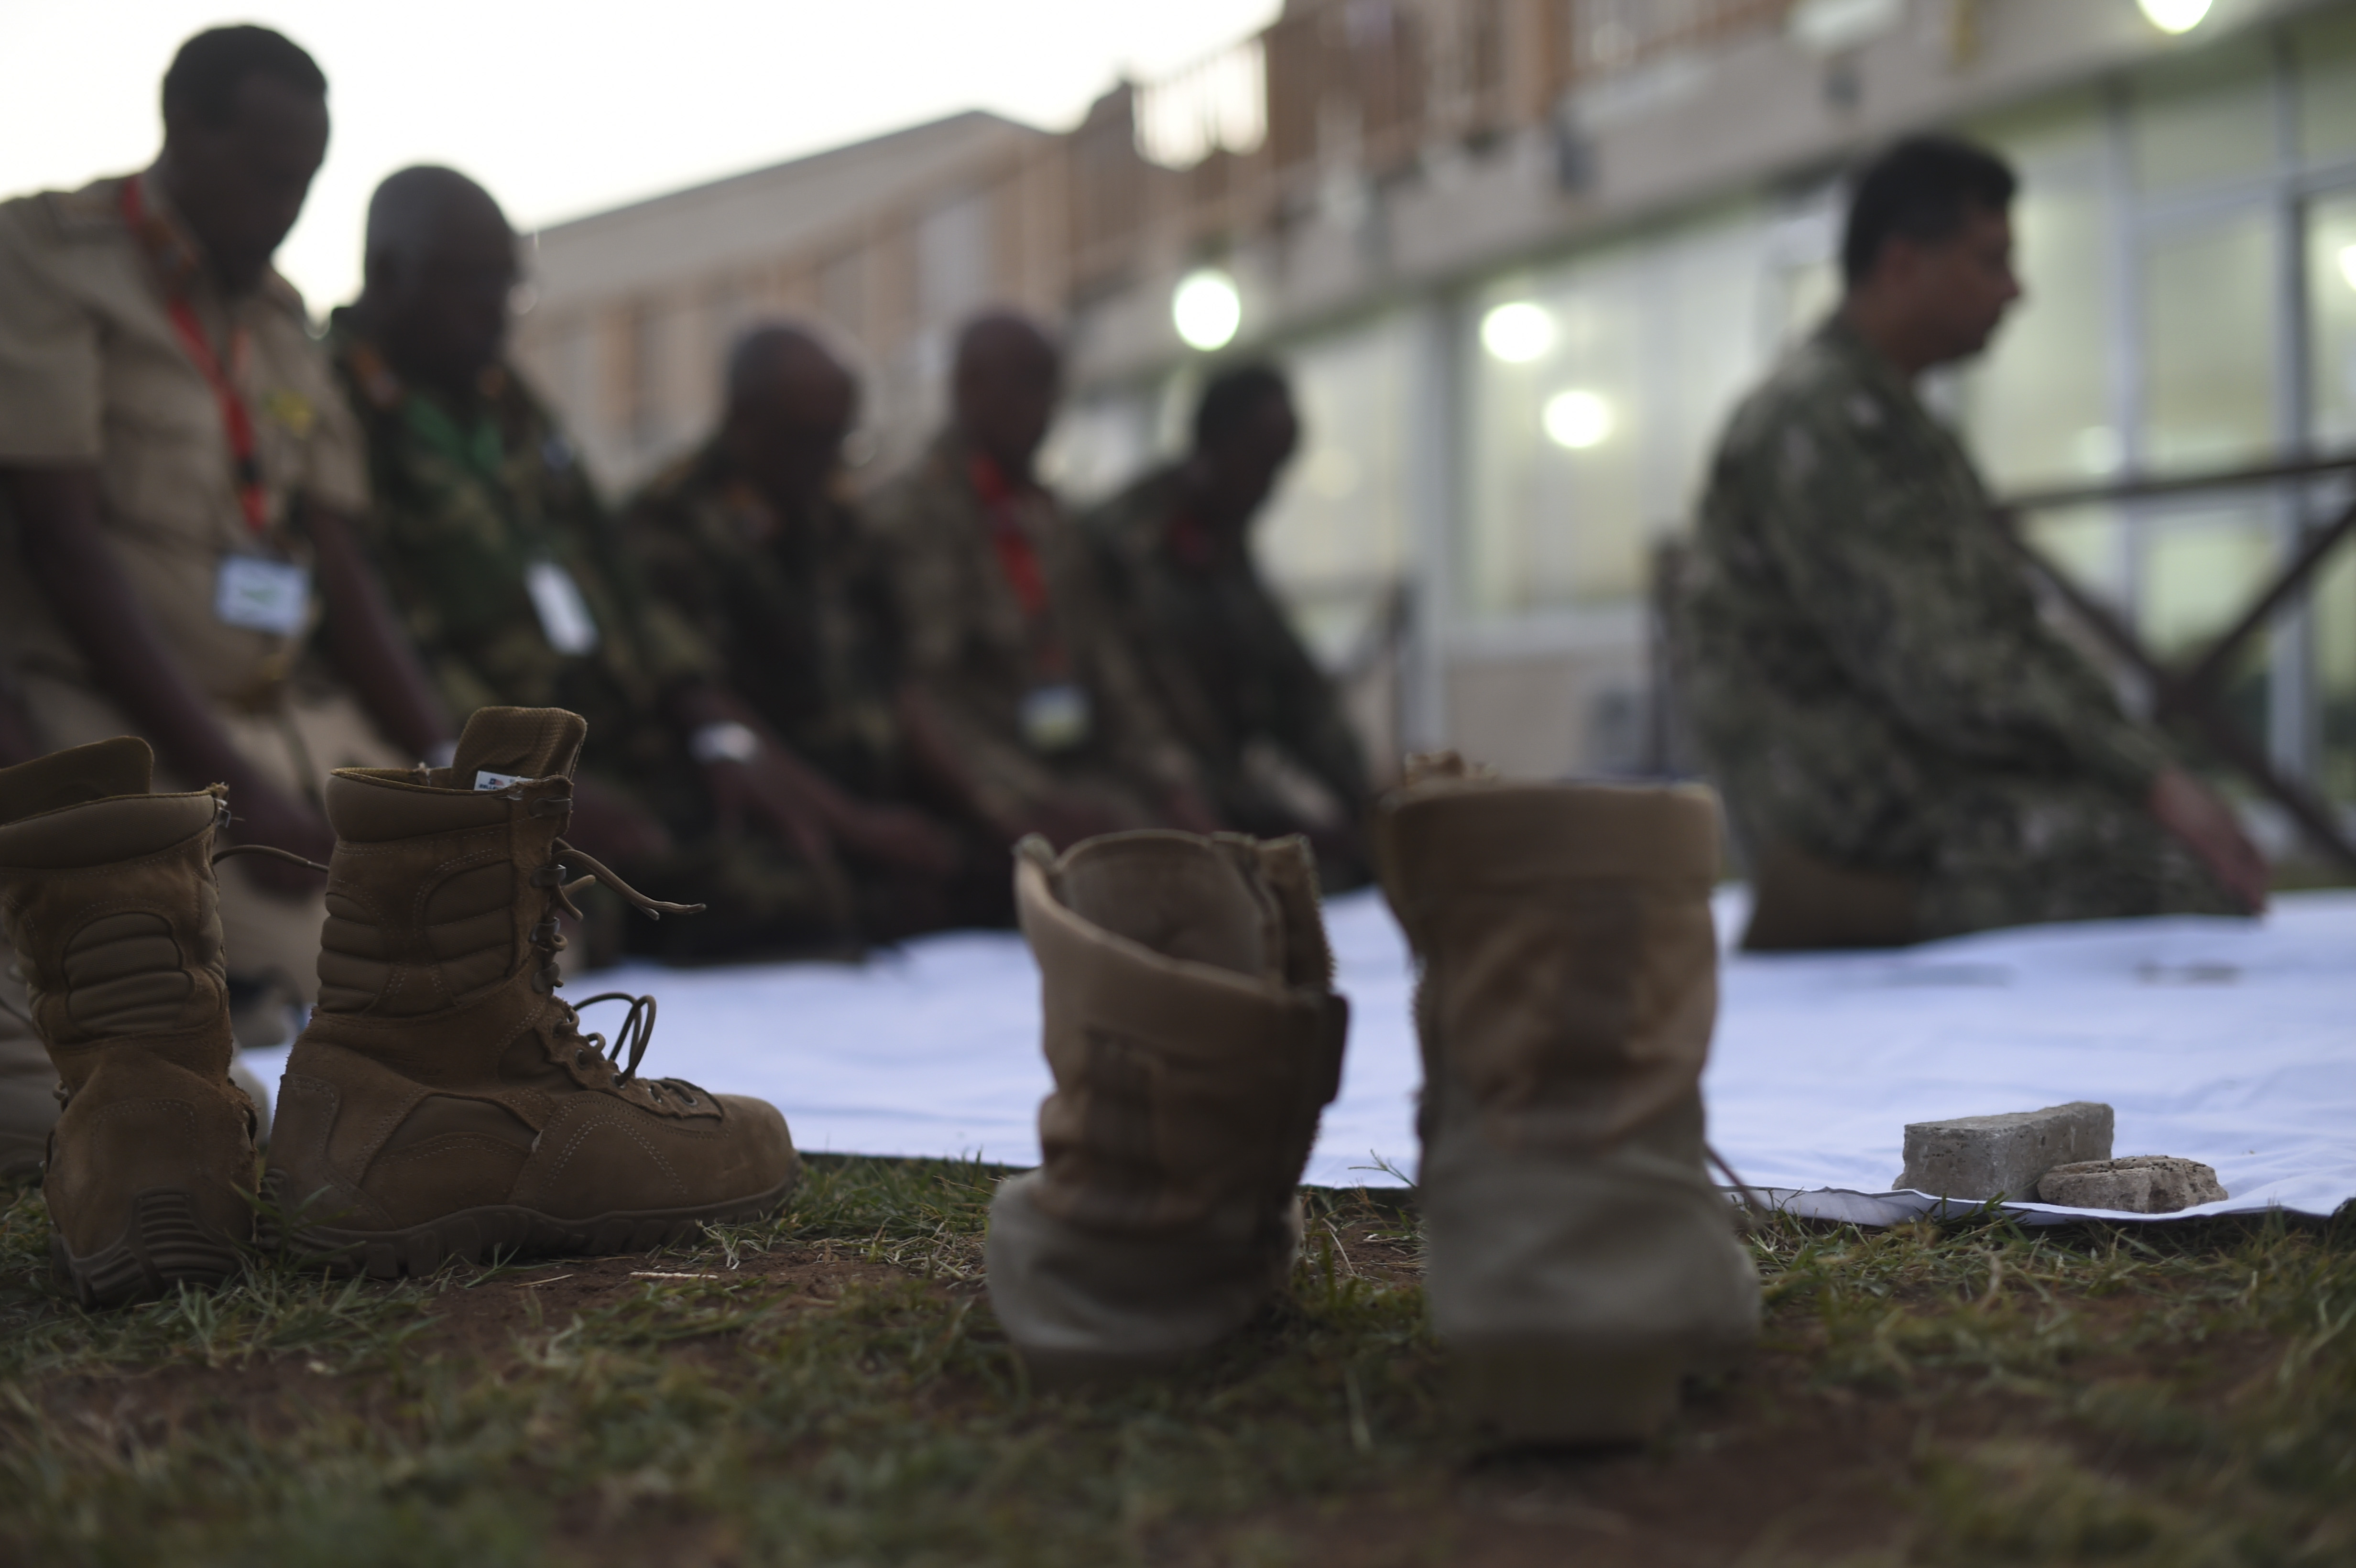 Military boots rest near a sheet placed on the ground for a prayer before an Iftar with members of the Somali National Army at the Mogadishu International Airport, Mogadishu, Somalia, June 5, 2017. This was the first Iftar held between U.S. and SNA military personnel. Additionally, it was the first led by a U.S. Imam, who is a leader in the Islamic faith. (U.S. Air Force Photo by Staff Sgt. Eboni Prince)